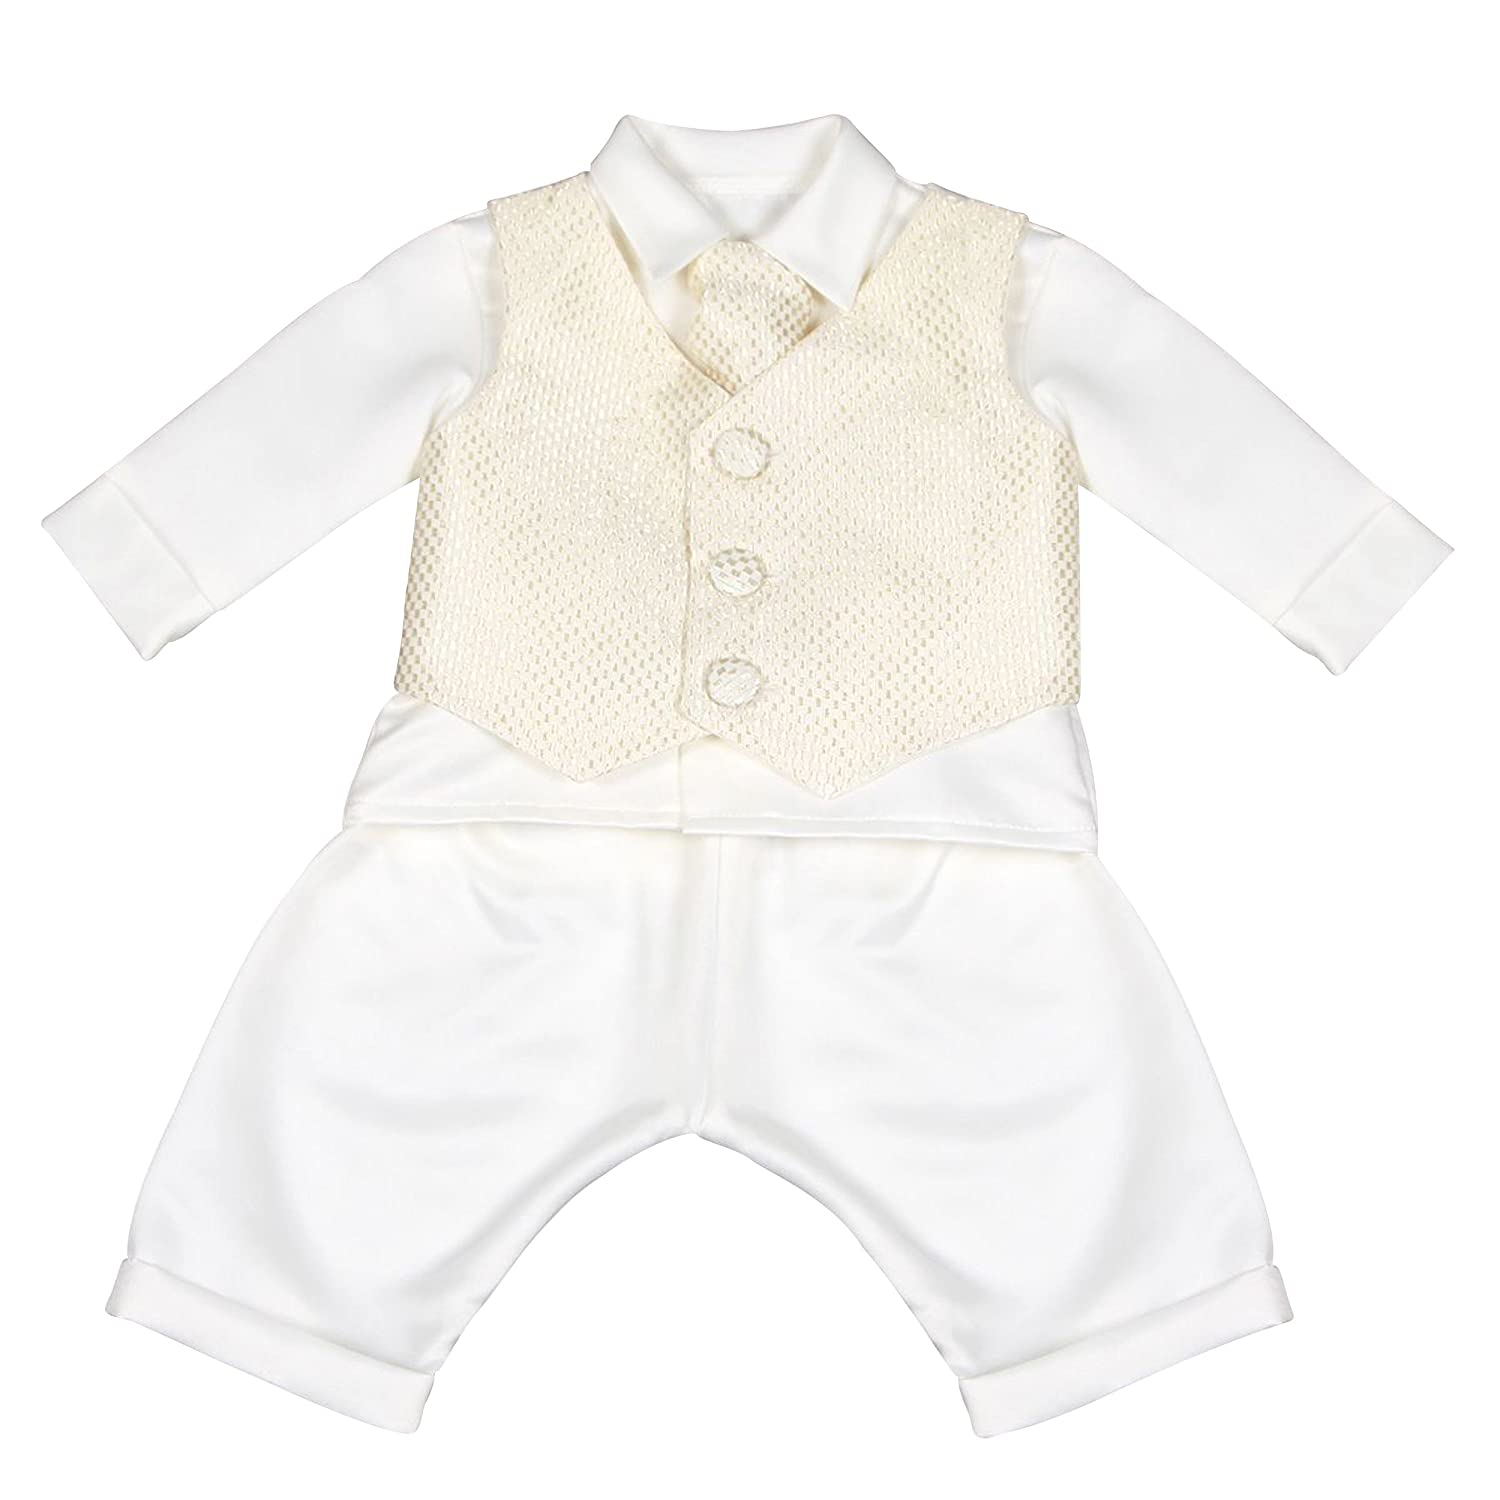 4 Piece Leo Christening Suit in White